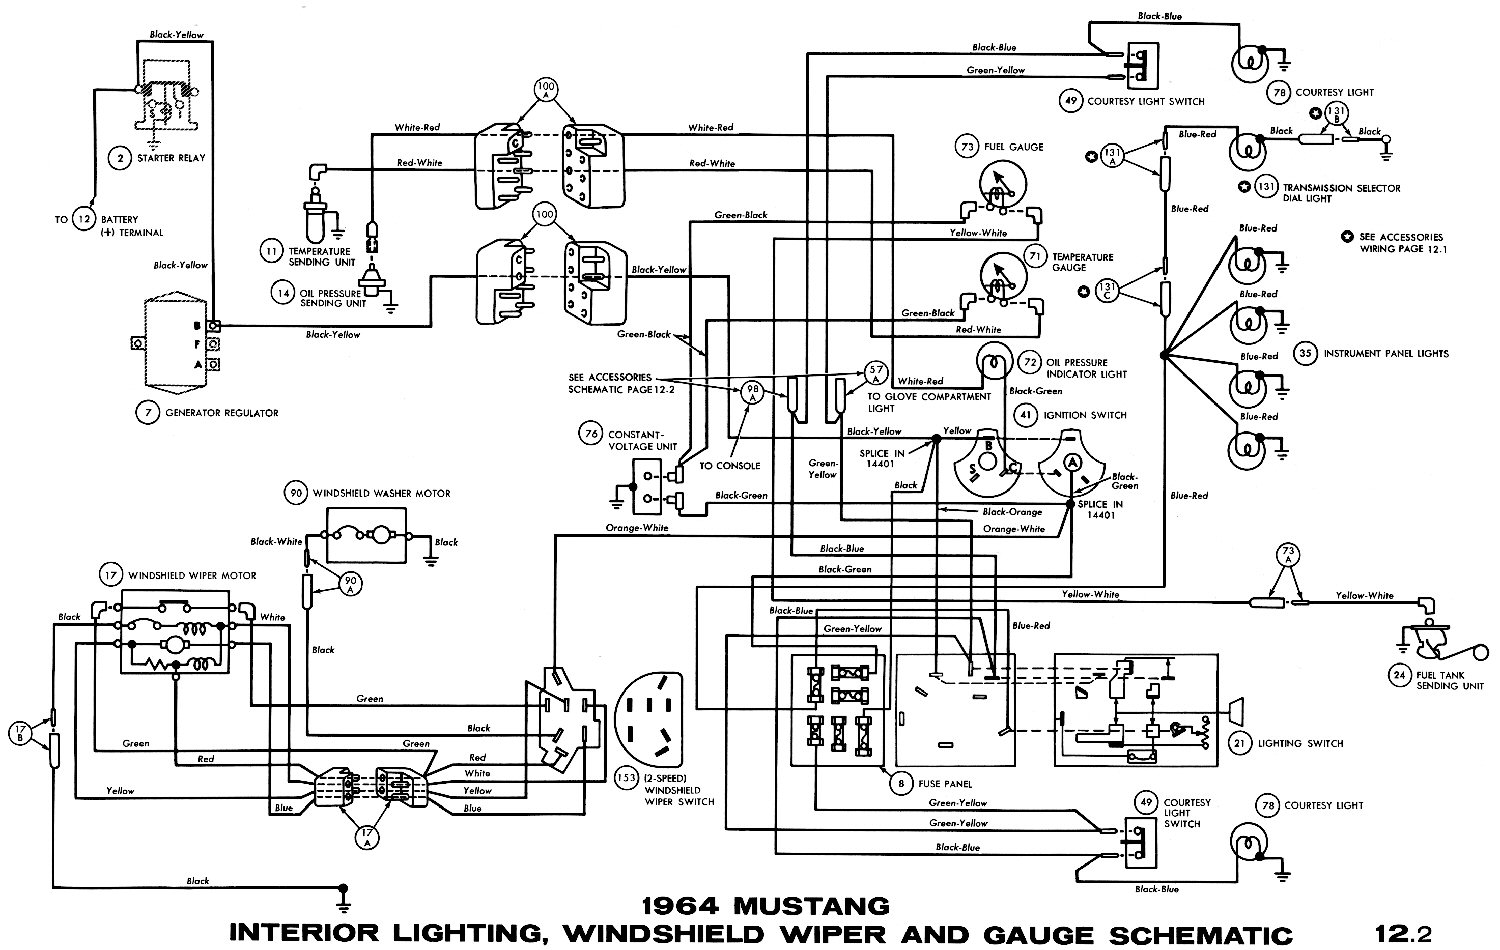 64 mustang wiring diagram wiring diagrams best 1964 mustang wiring diagrams average joe restoration 1989 mustang wiring diagram 64 mustang wiring diagram